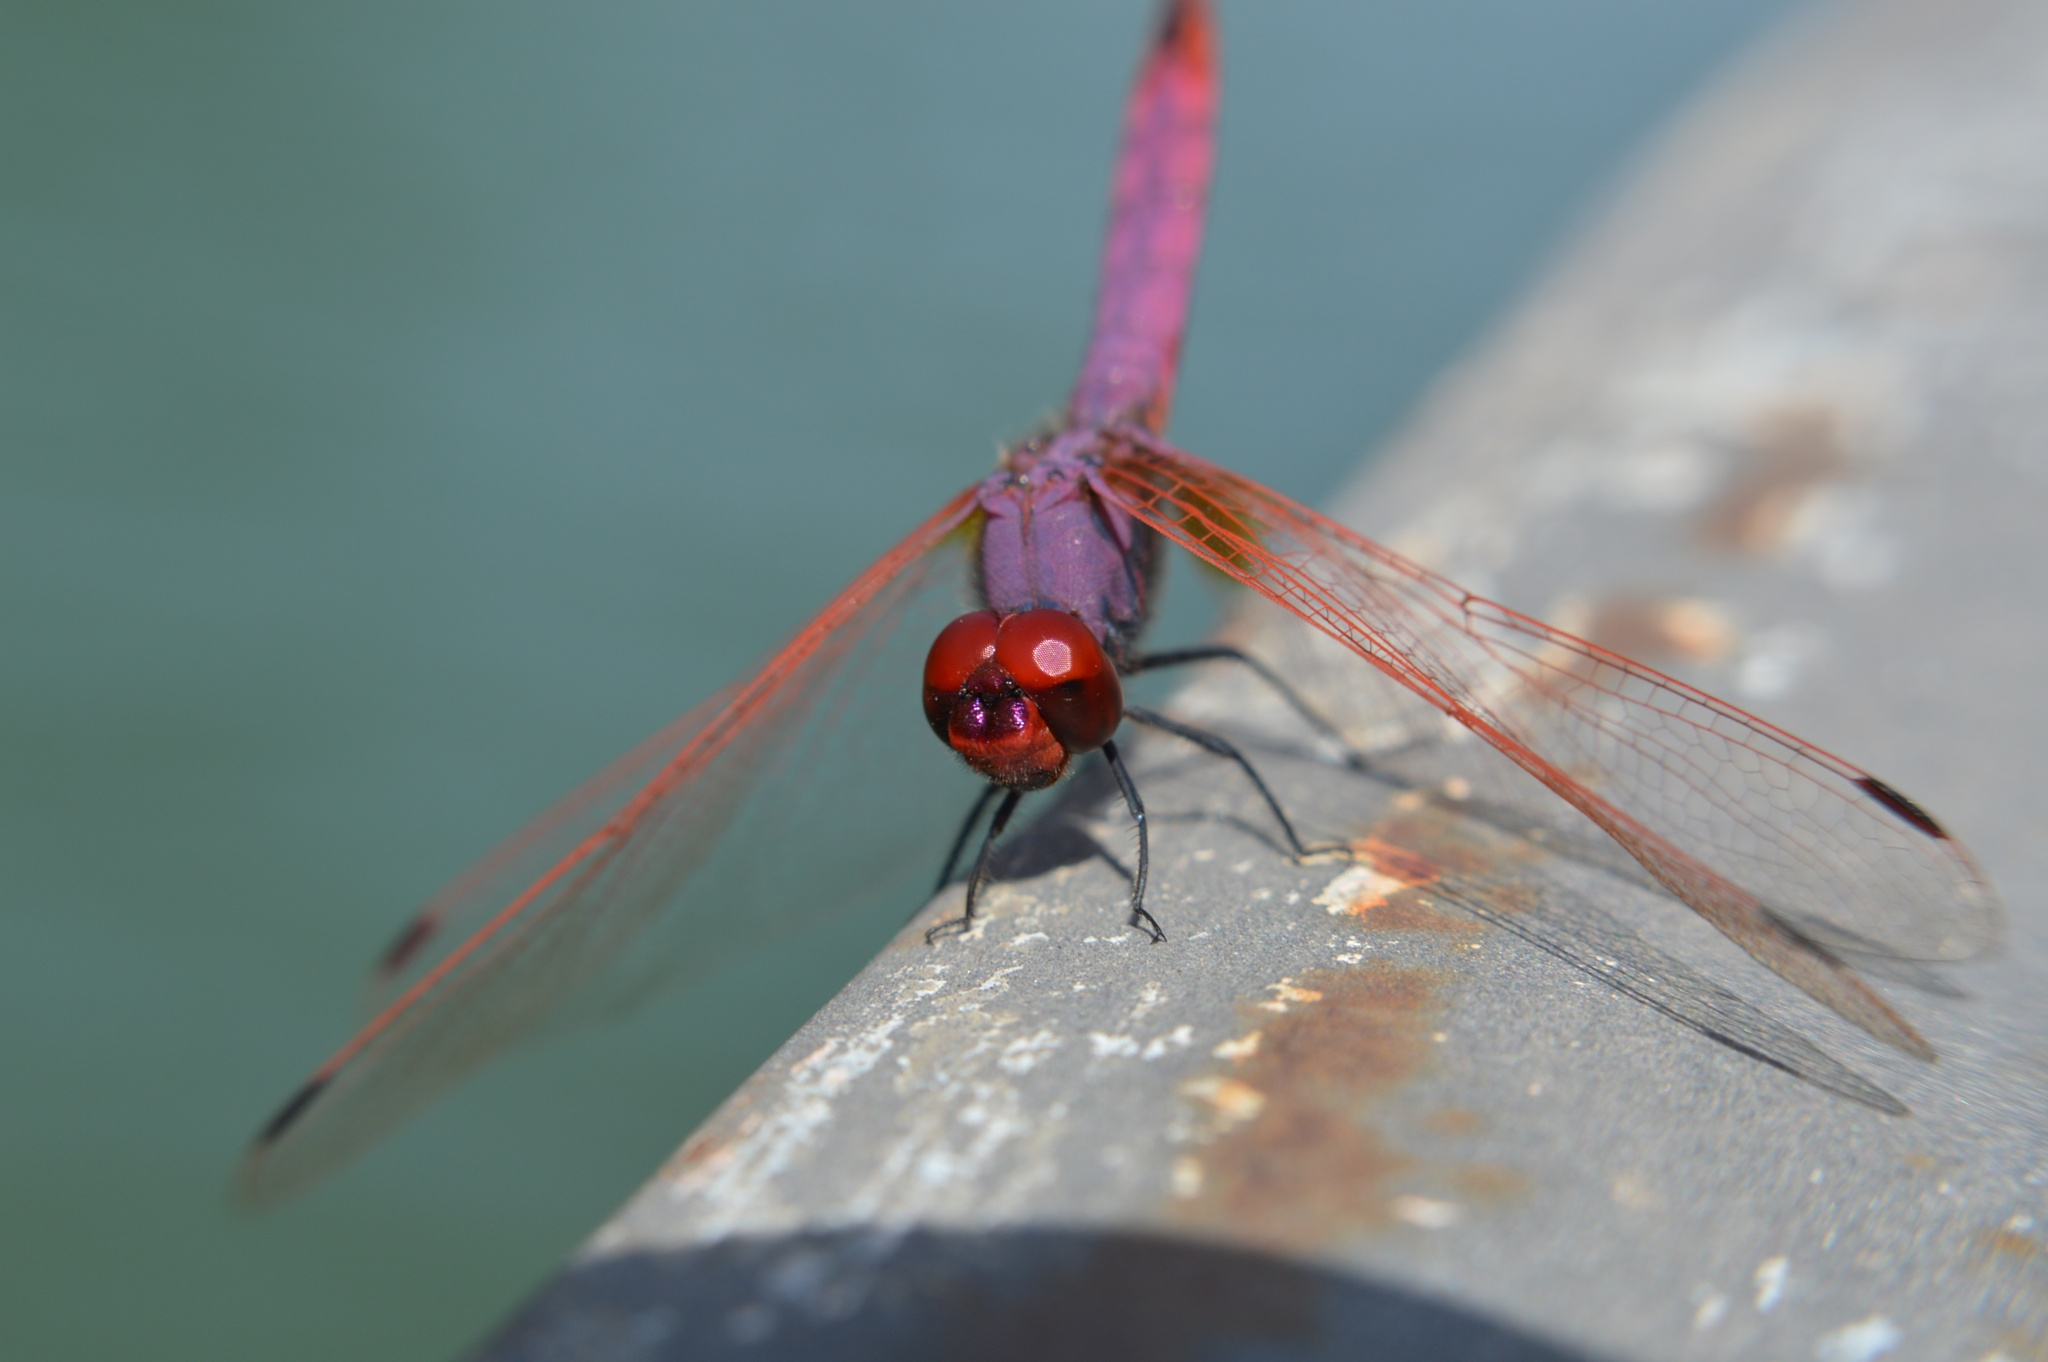 Dragonfly by Alessandro Deri